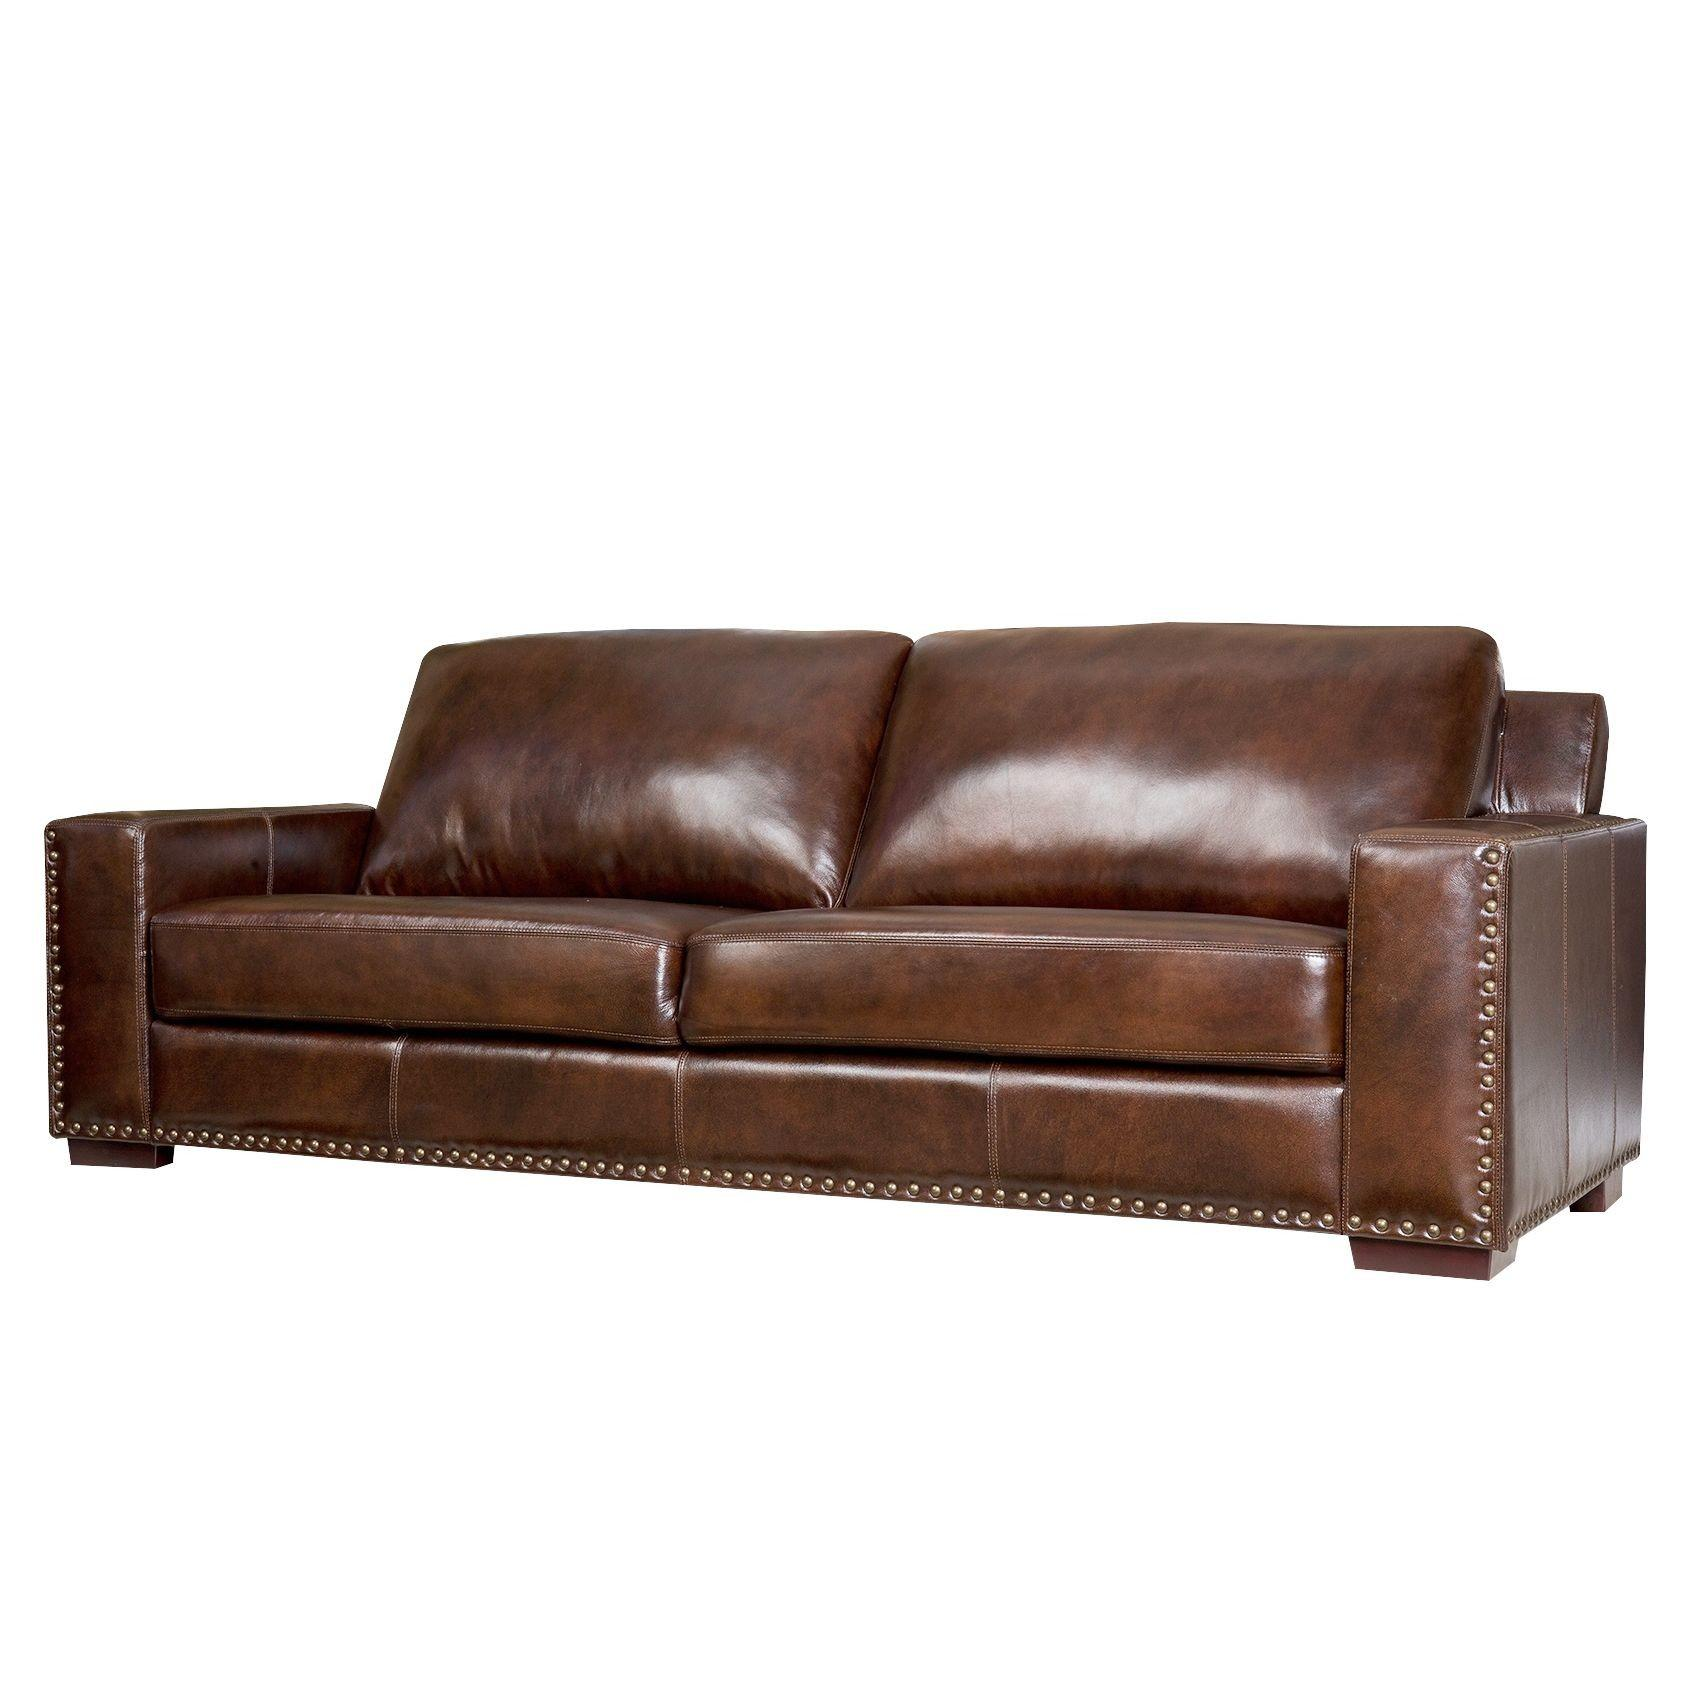 Furniture Brown Distressed Leather Sofa Seat